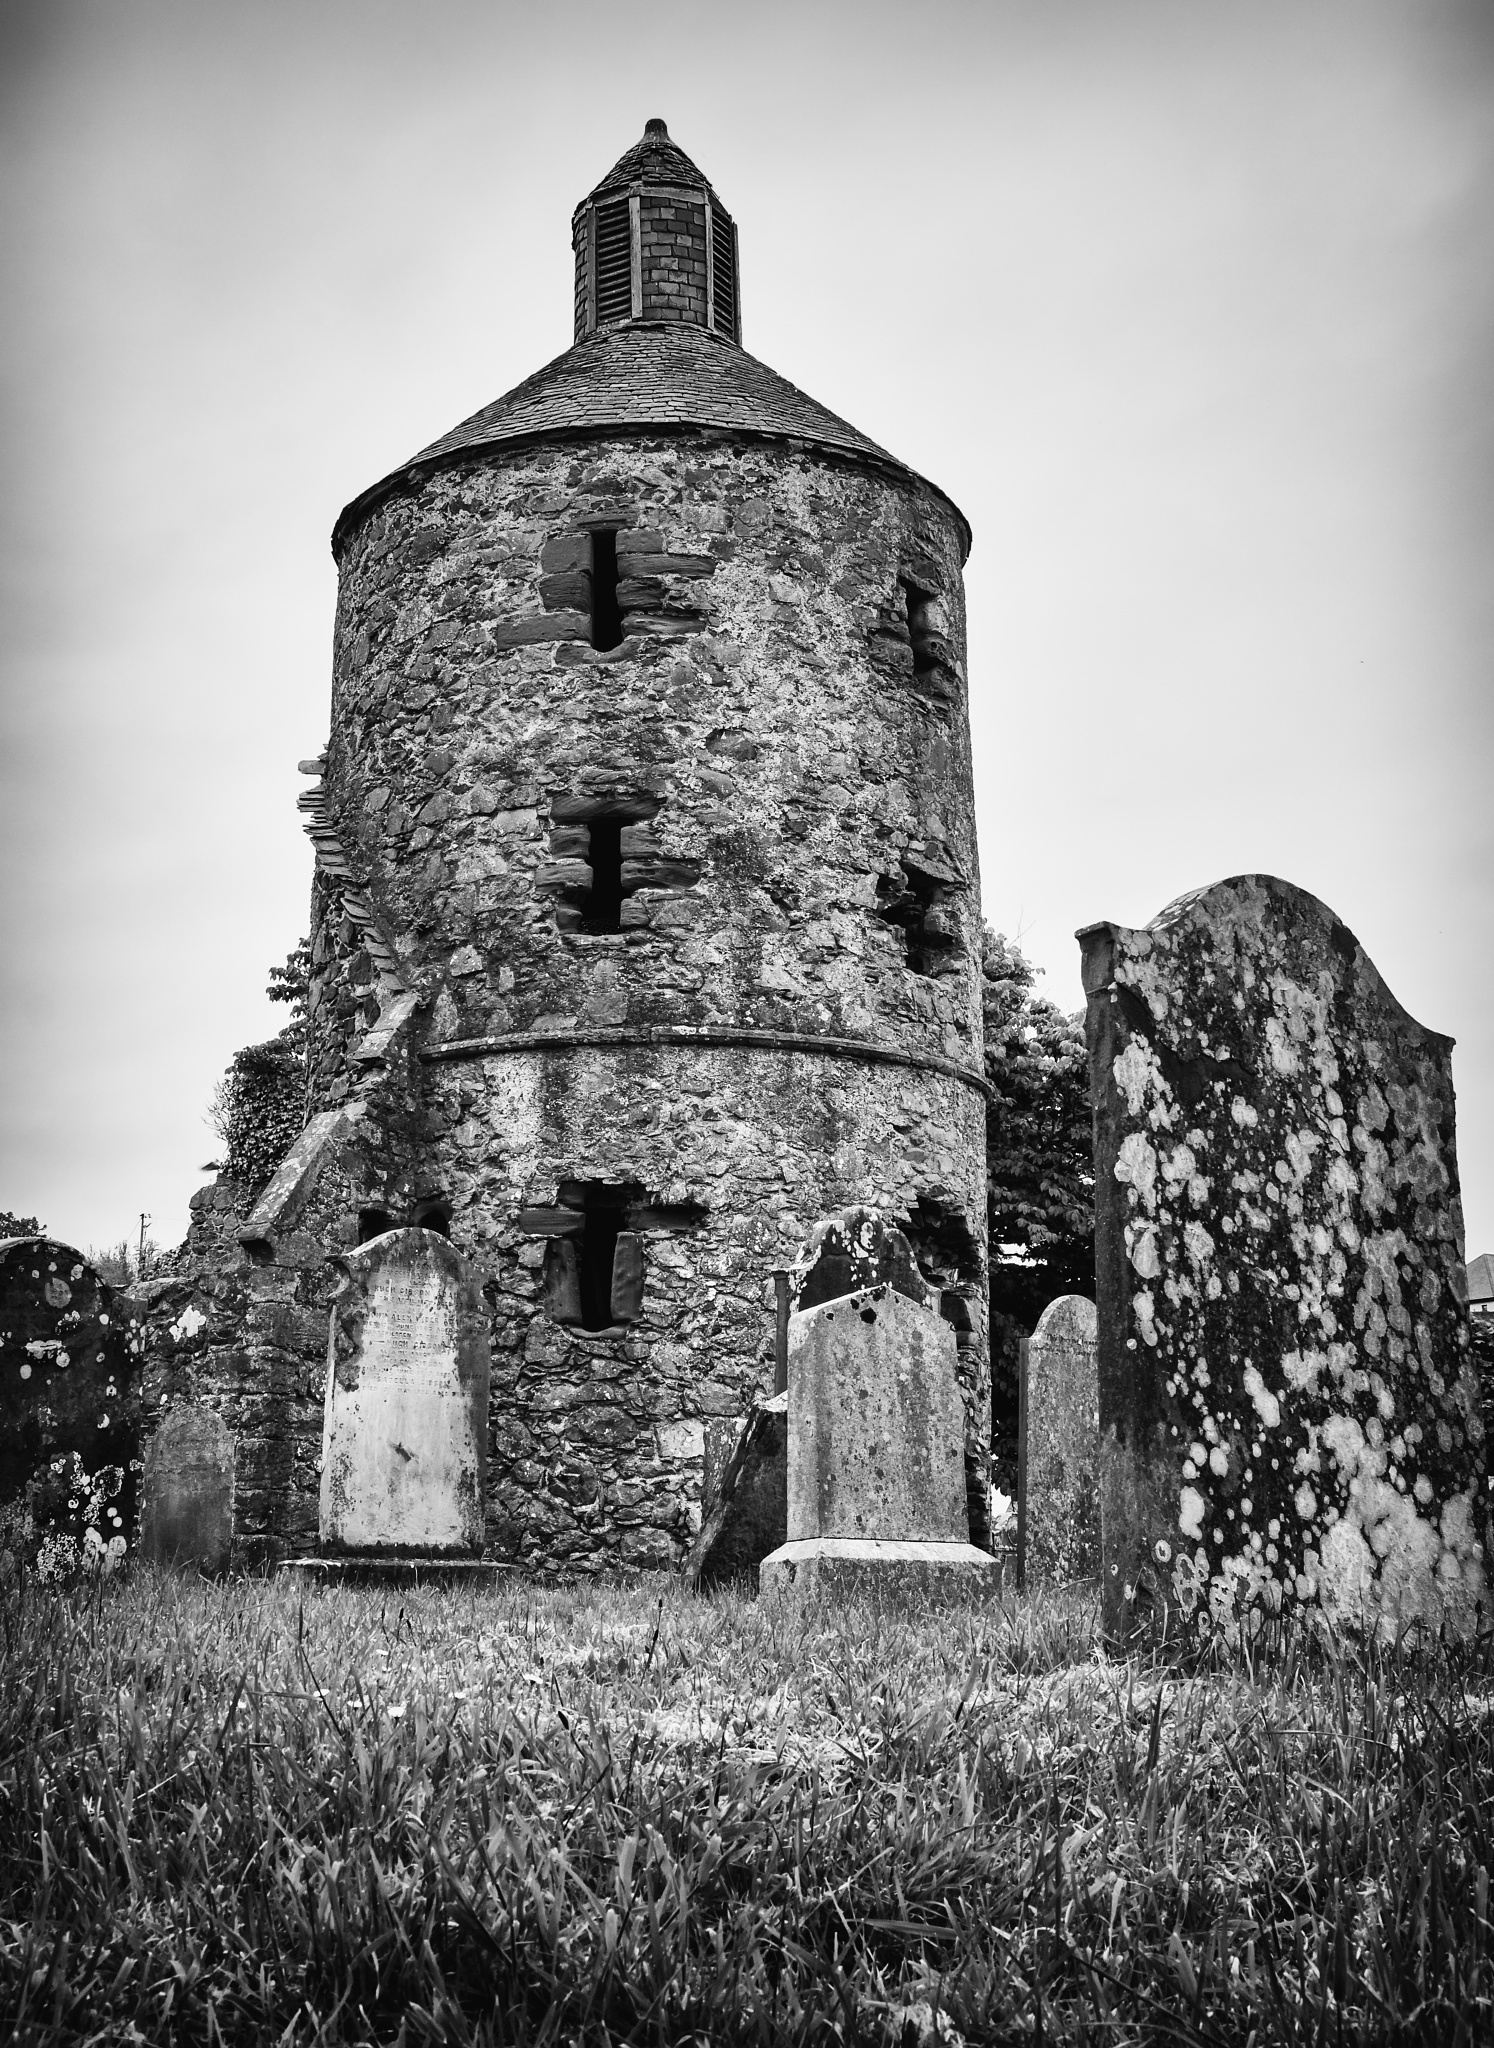 Portpatrick old cemetery by Mole59